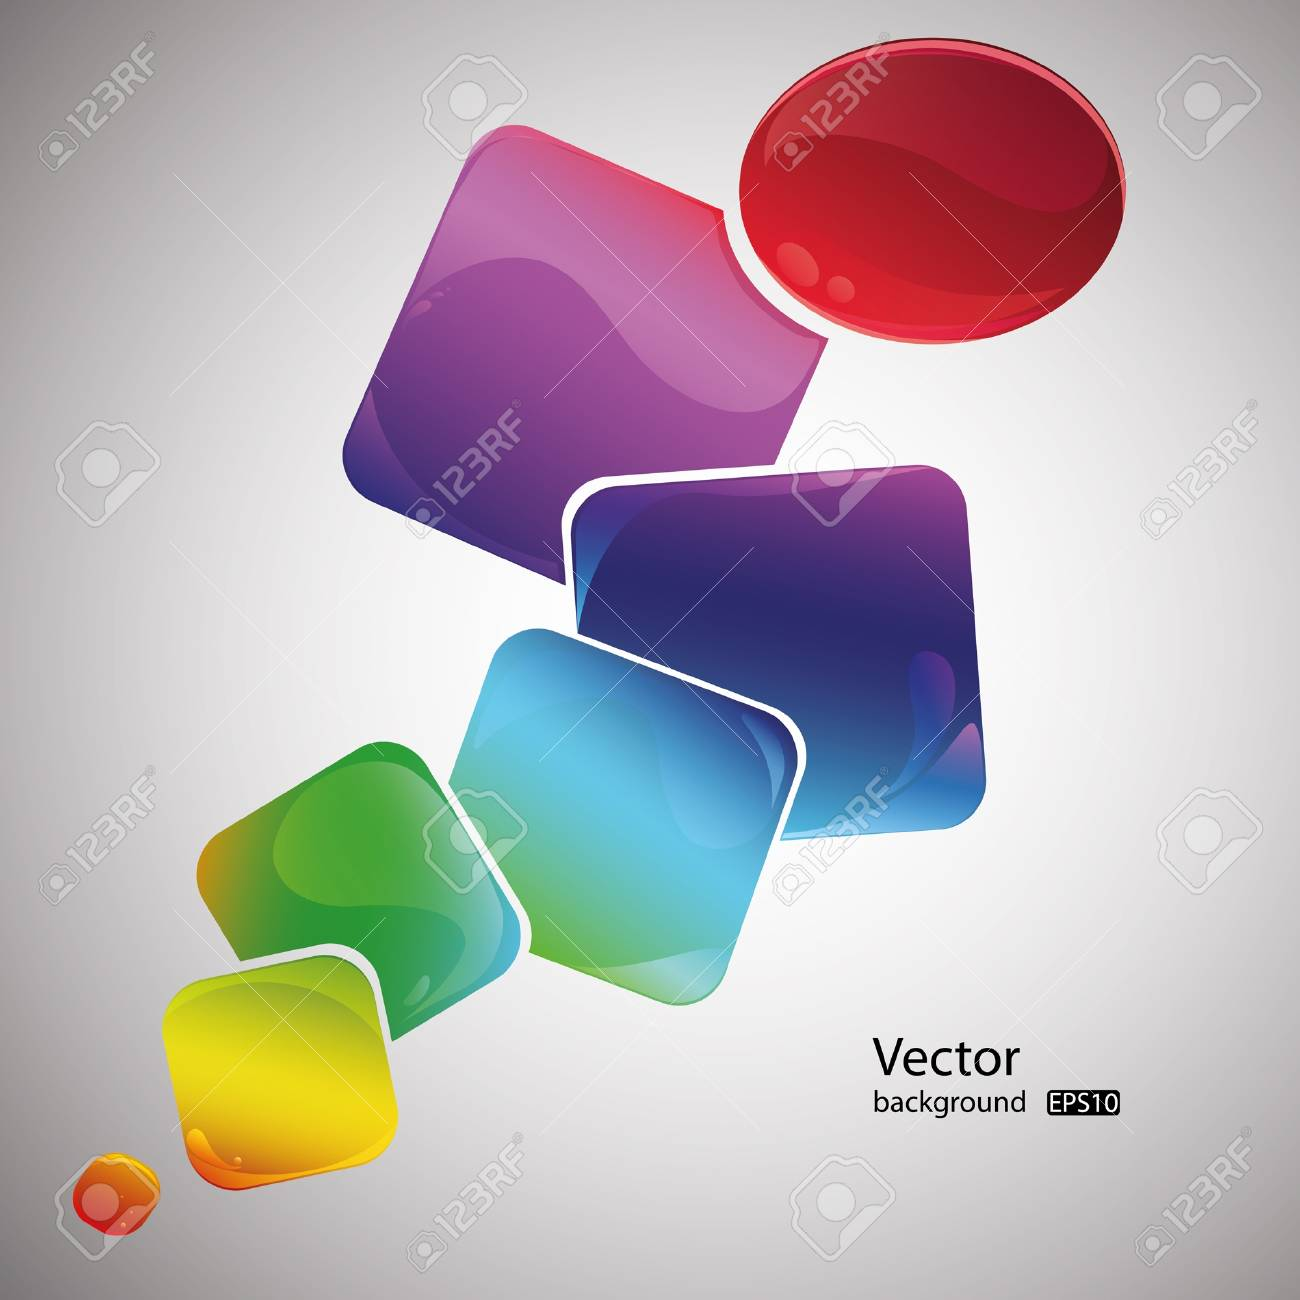 Abstract colorful vector background. EPS10 Stock Vector - 9849167